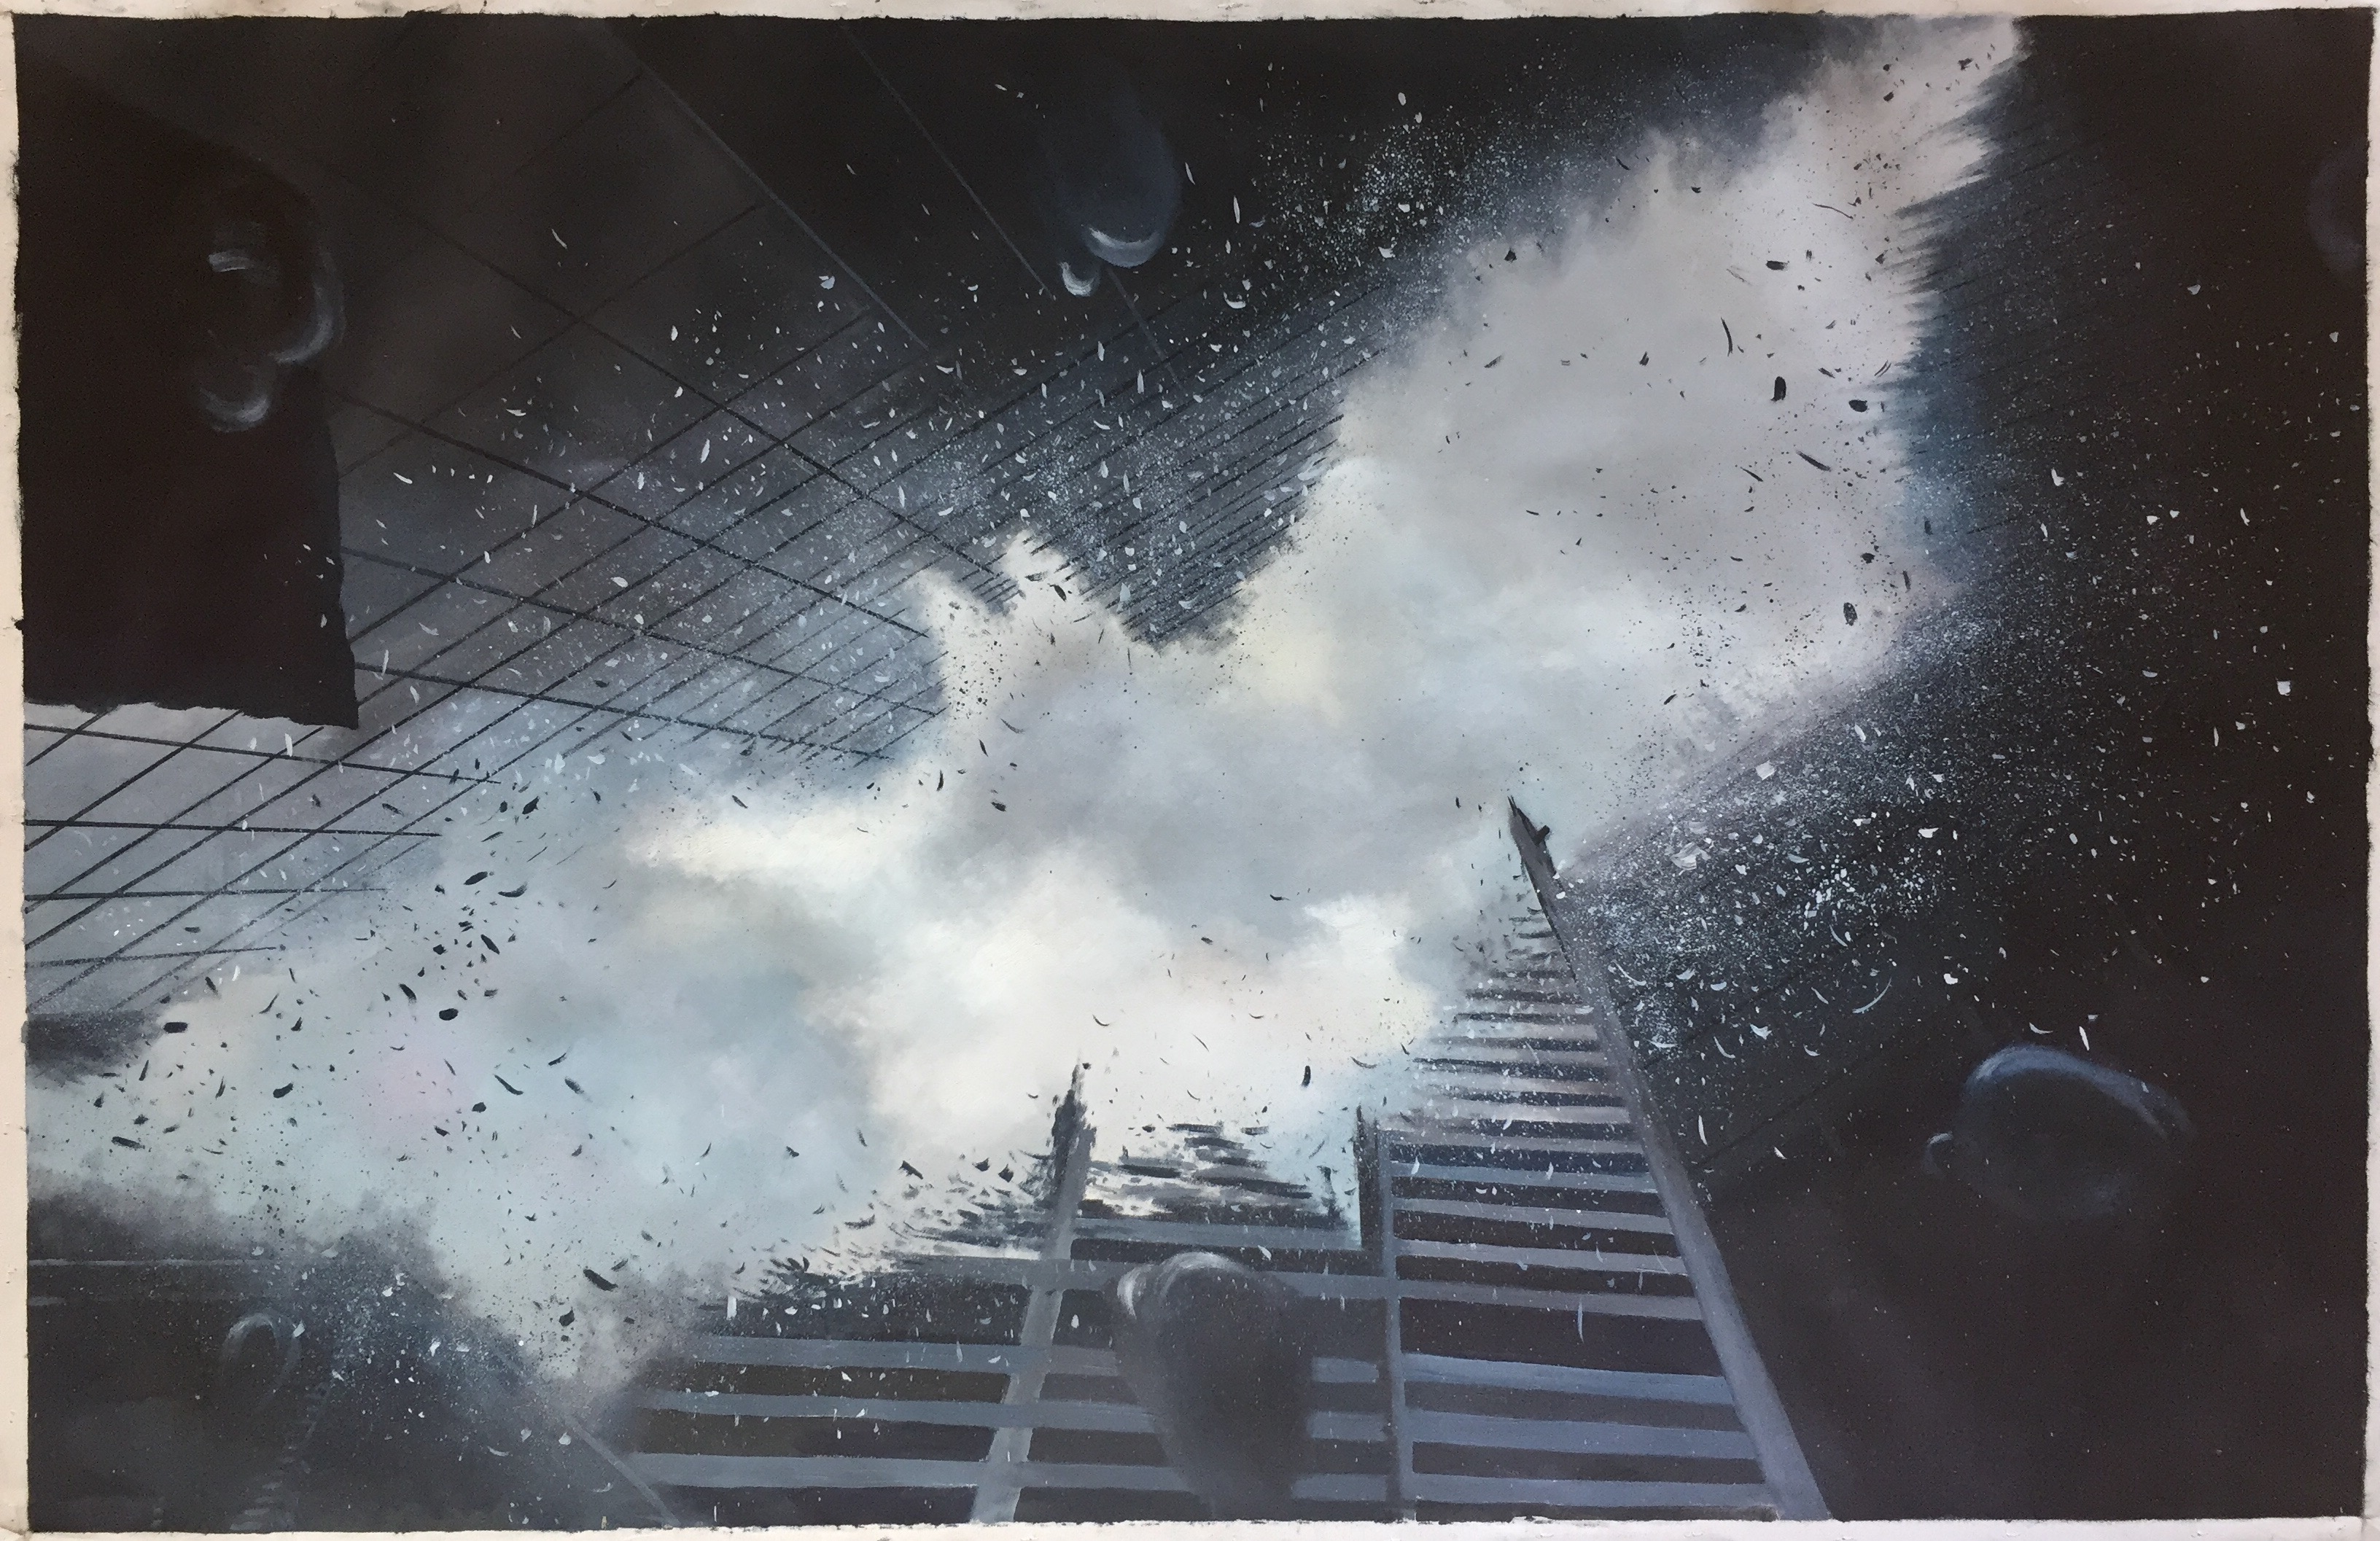 Batman The Dark Knight artwork by Benjamin Flamel - art listed for sale on Artplode